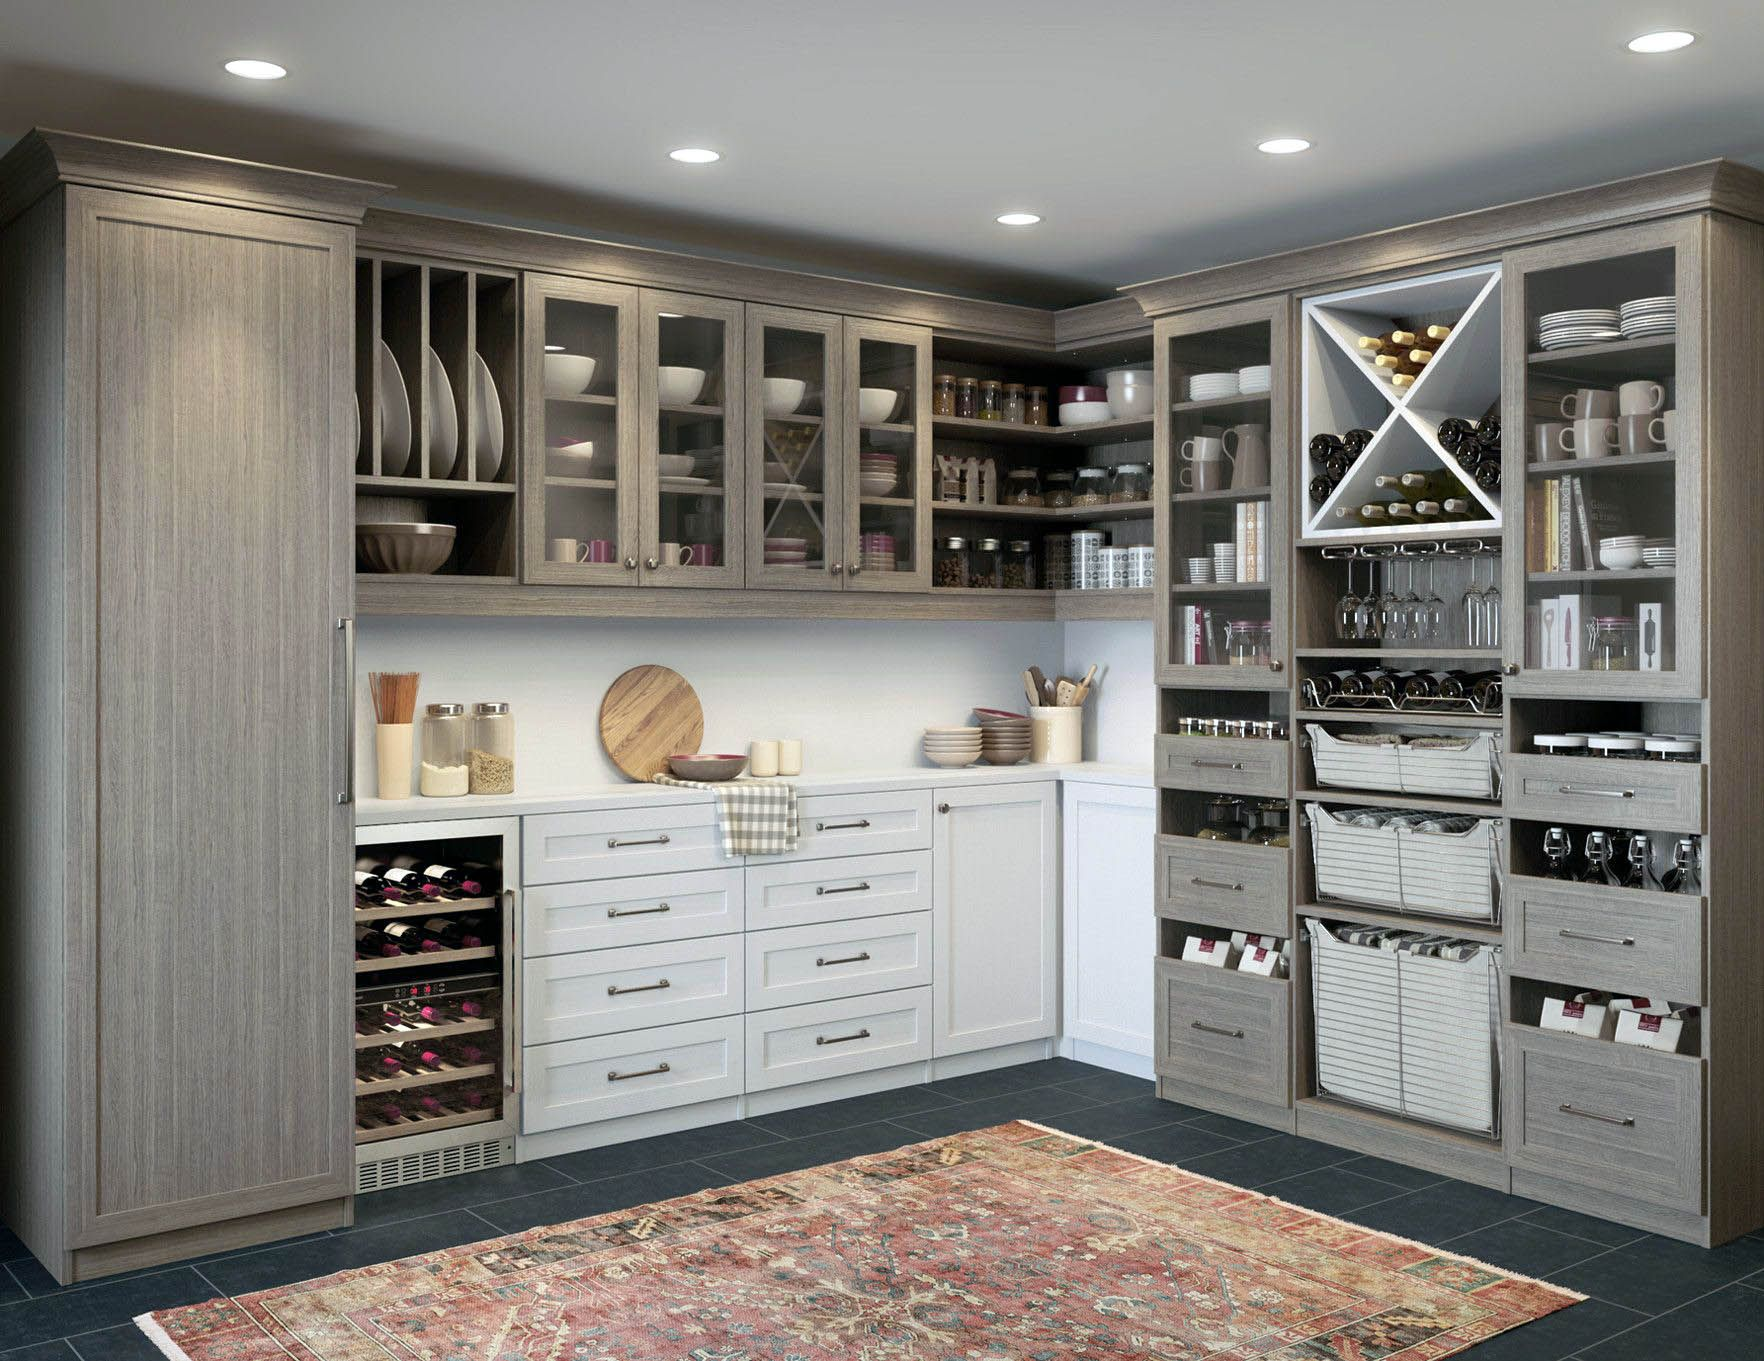 Cozy Kitchen Pantry Storage Cabinet Broom Closet For Your Home Custom Kitchen Cabinets Design California Closets Custom Kitchen Cabinets